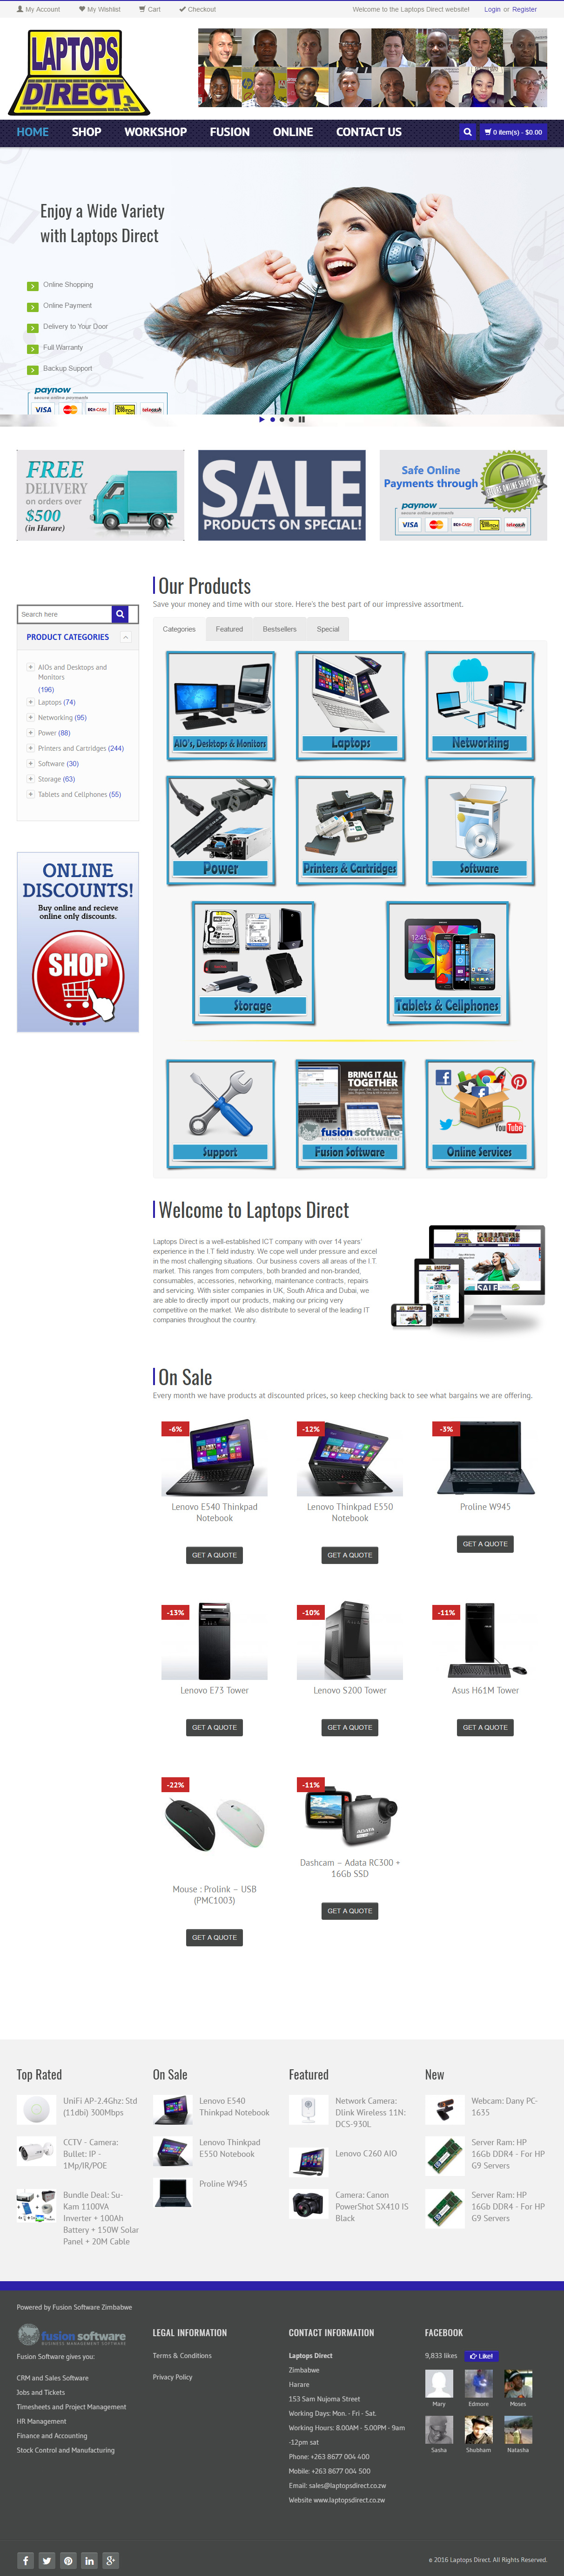 Laptops-Direct-Homepage